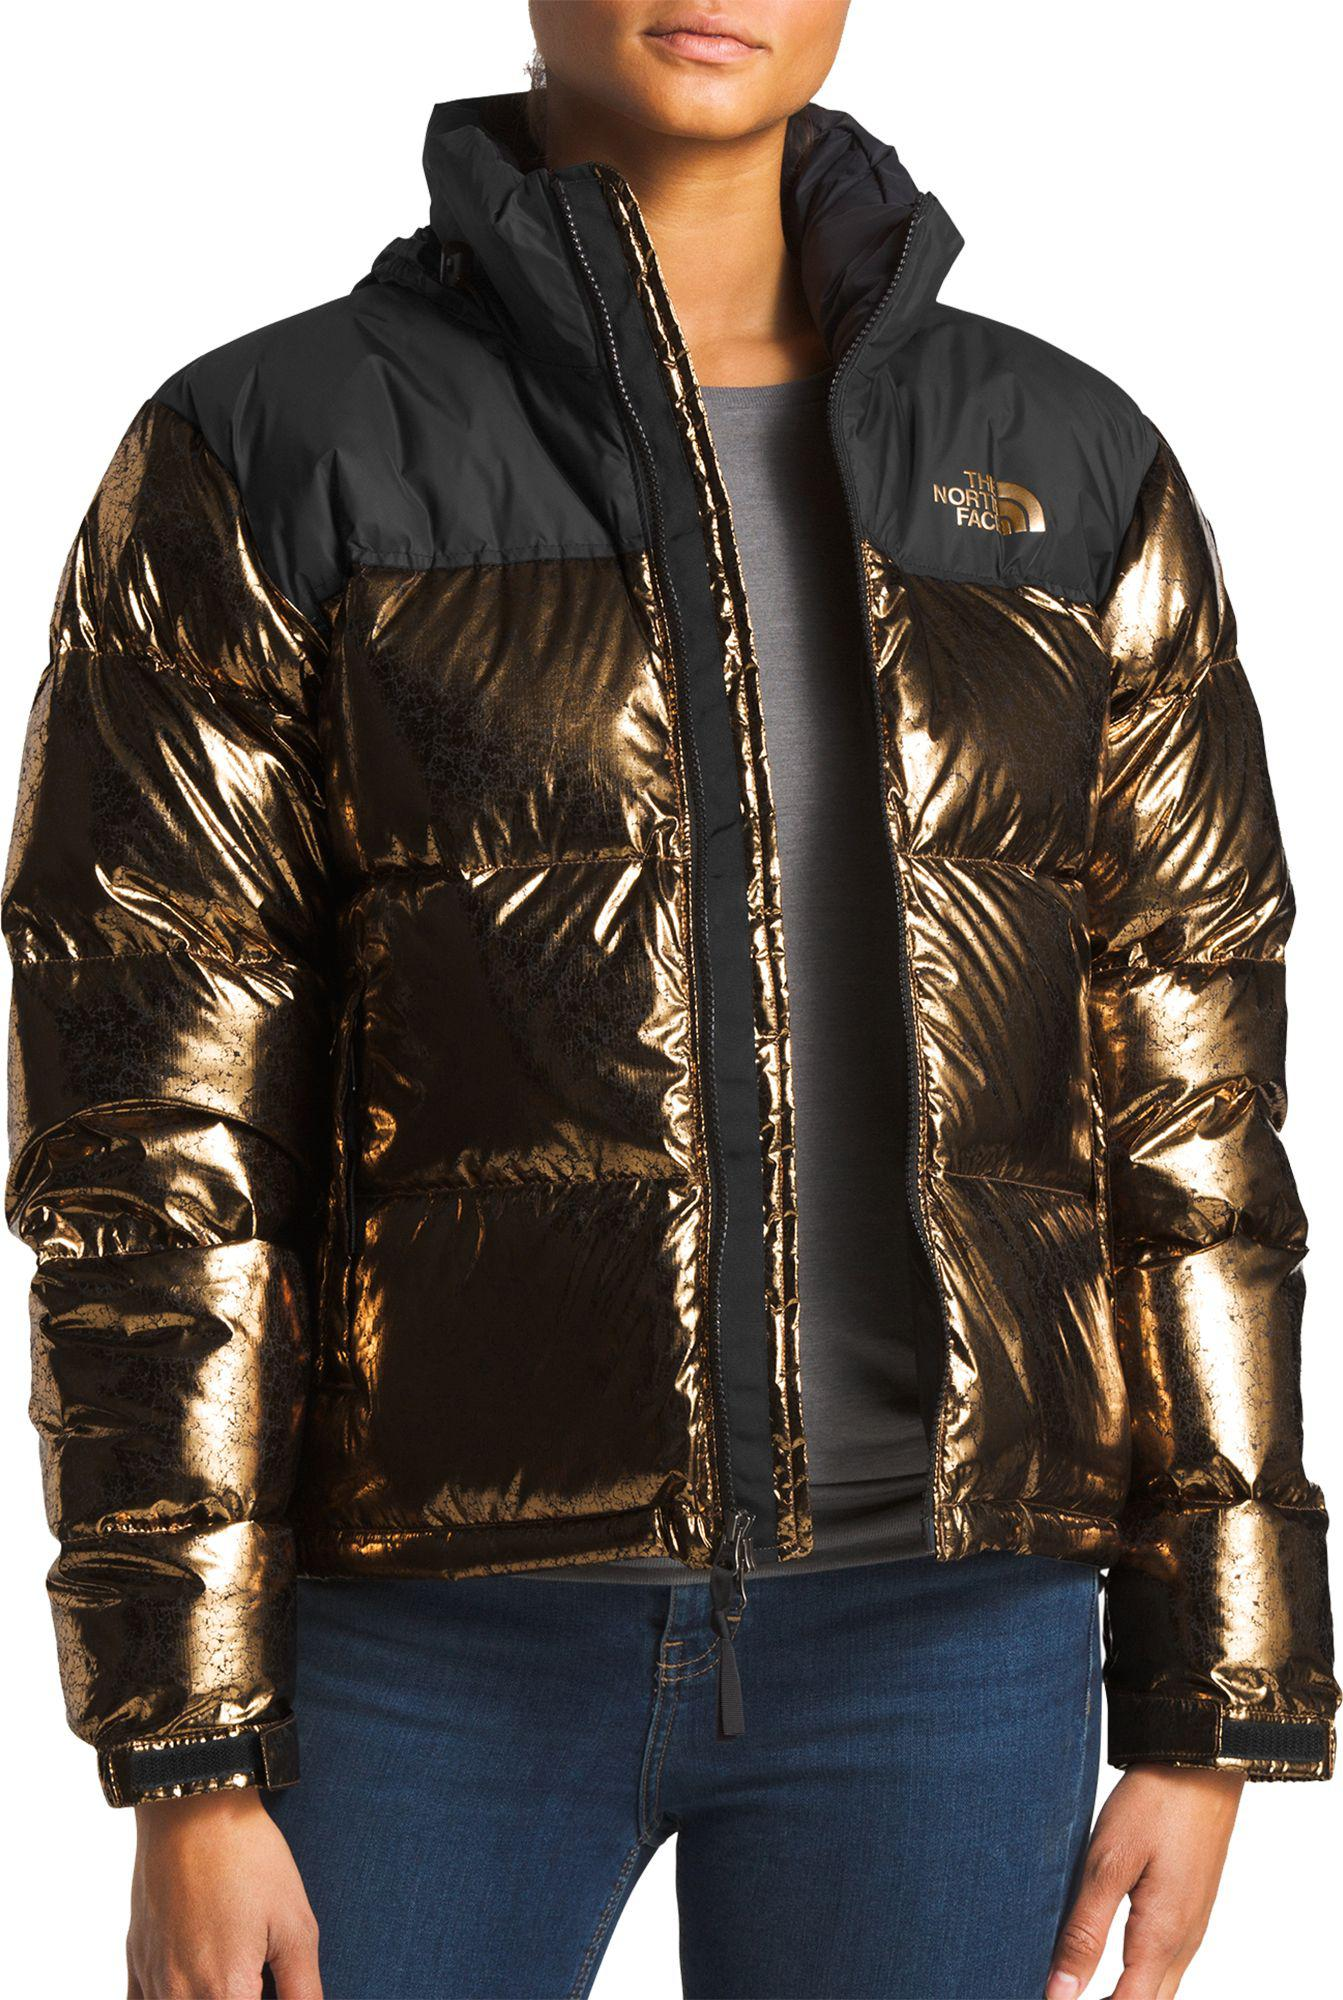 Lyst - The North Face 1996 Retro Nuptse Jacket - Save 25% a8d799001